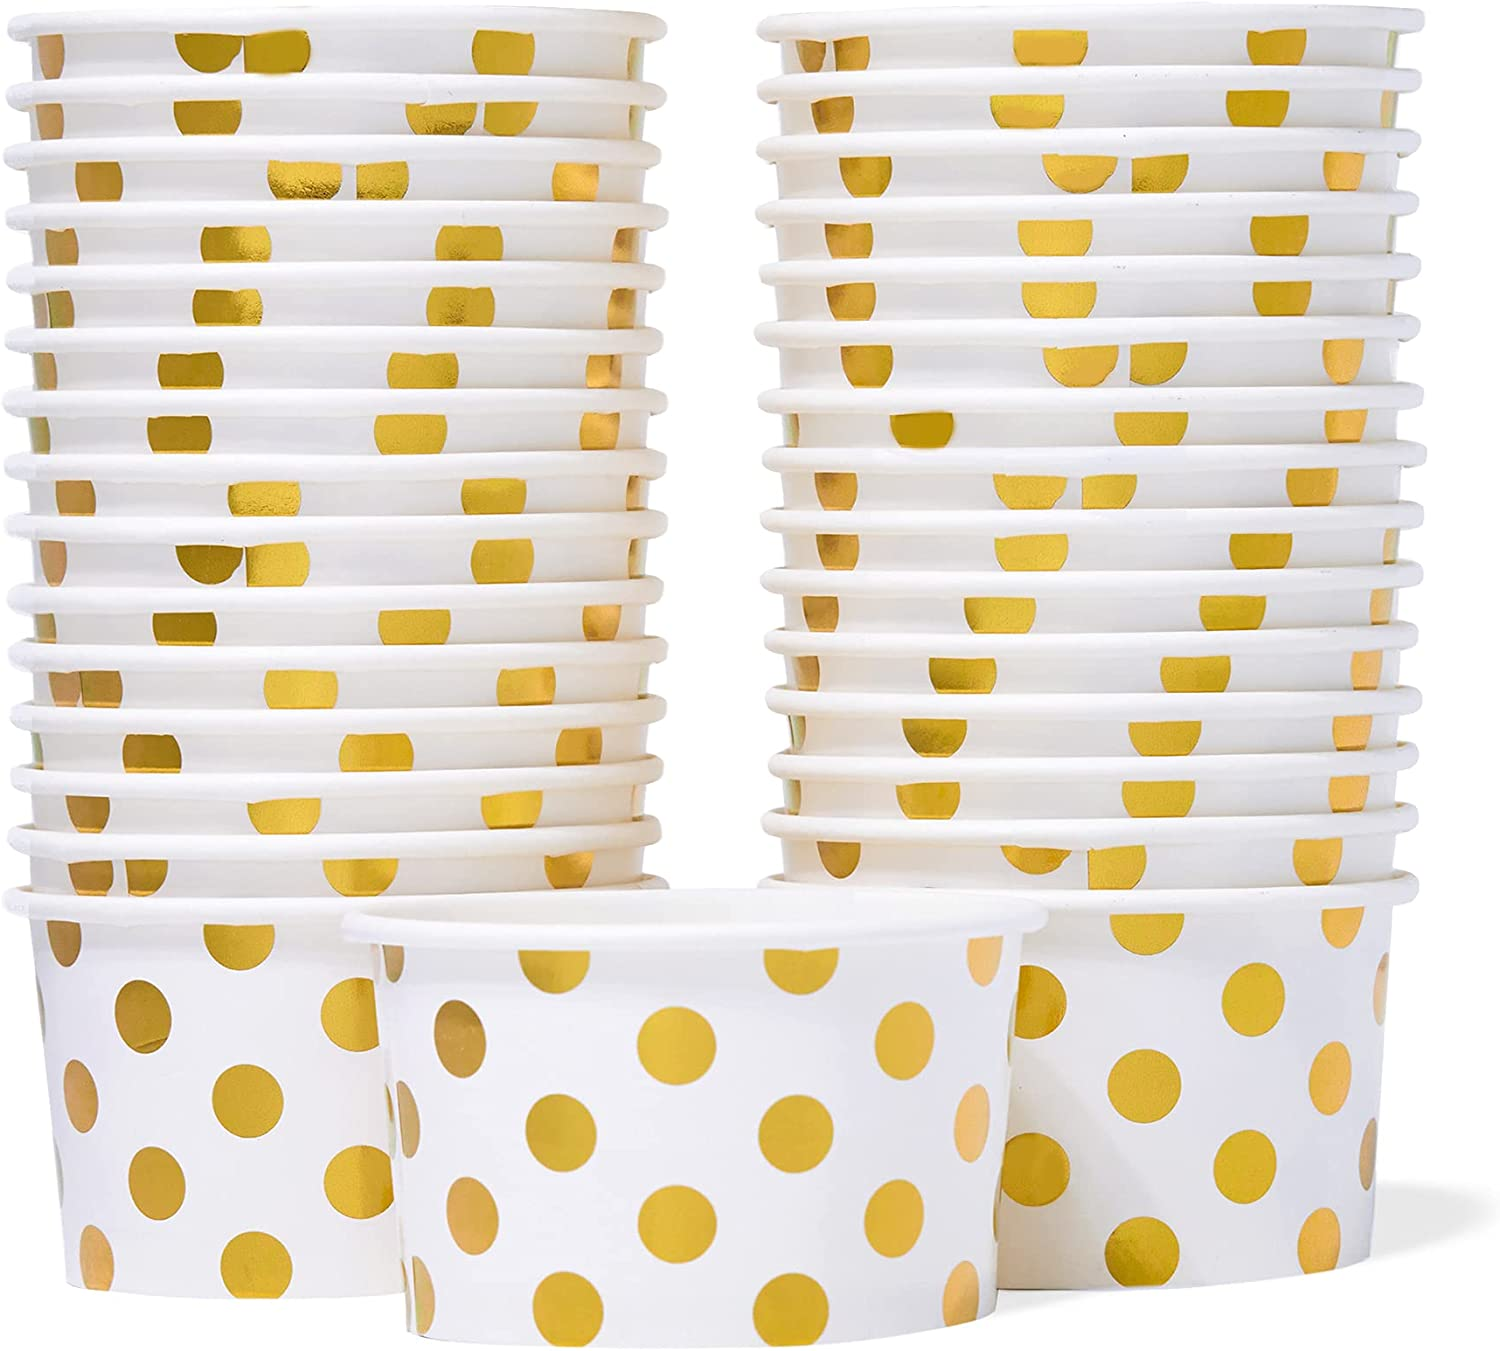 Paper Ice Cream Cups - 30-Count 5.5-Oz Disposable Dessert Bowls for Hot or Cold Food, 5.5-Ounce Party Supplies Treat Cups for Sundae, Frozen Yogurt, Soup, Gold Foil Polka Dots